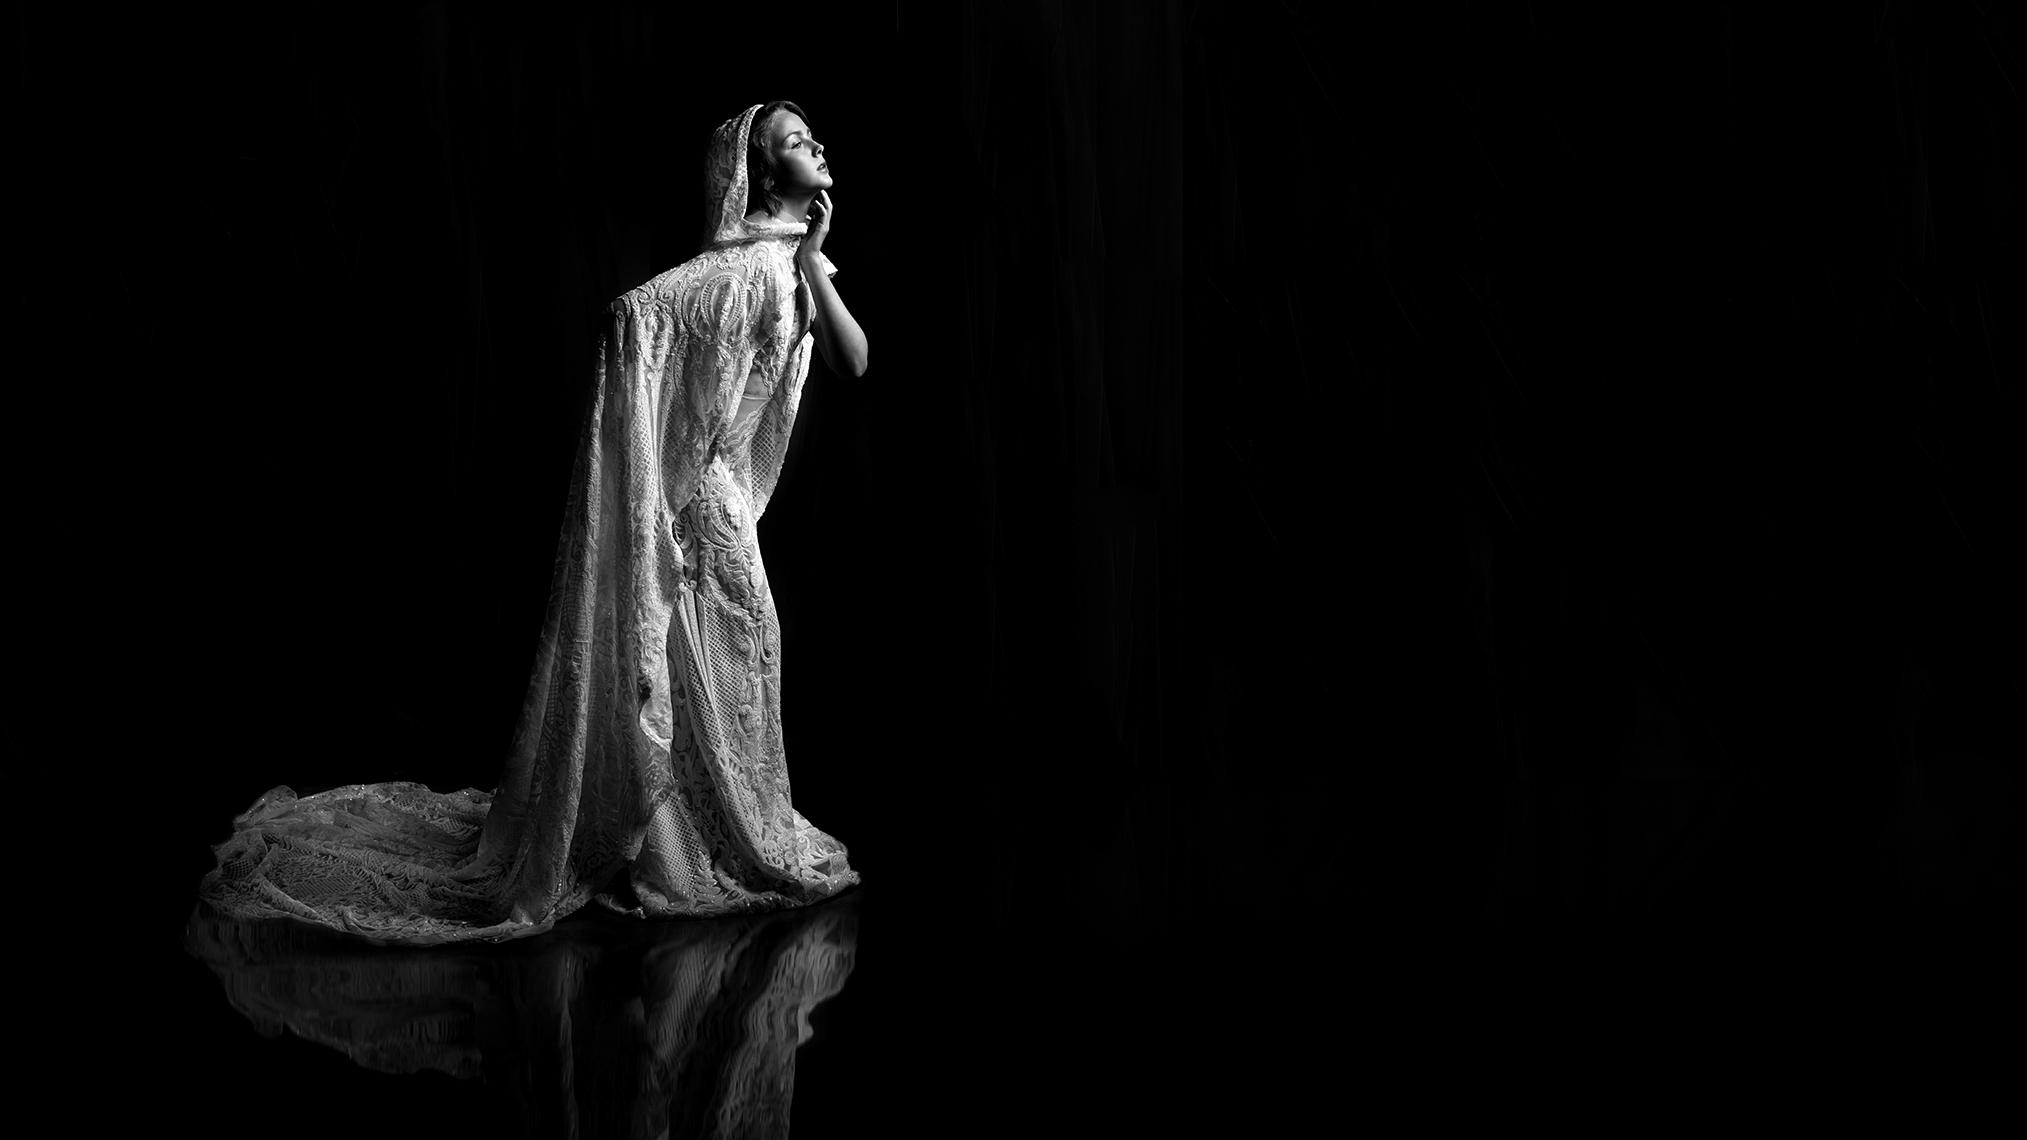 conceptual-photo-model-darkness-gown-gerard-harrison